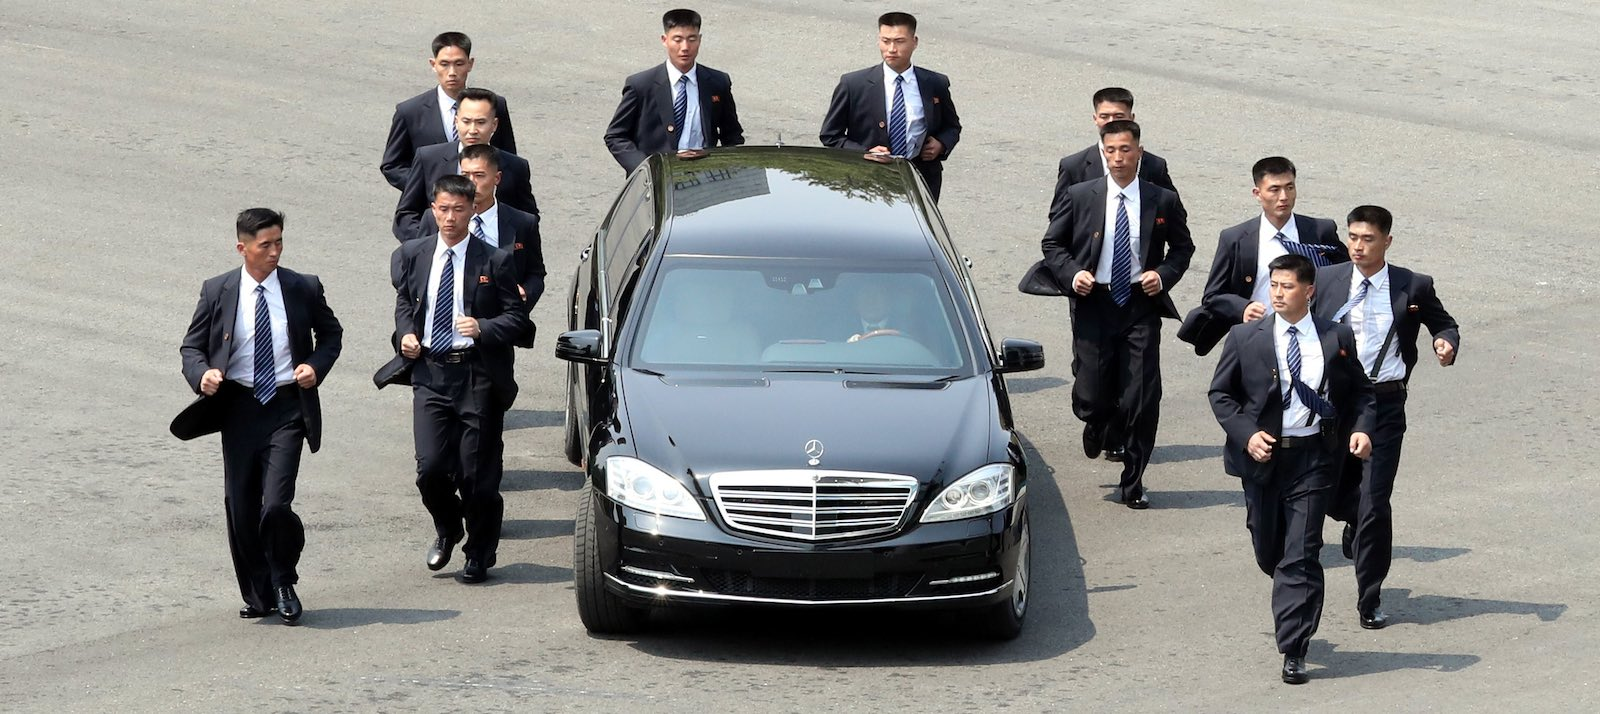 North Korean Leader Kim Jong-un escorted by his jogging bodyguards (Photo: Getty Images)